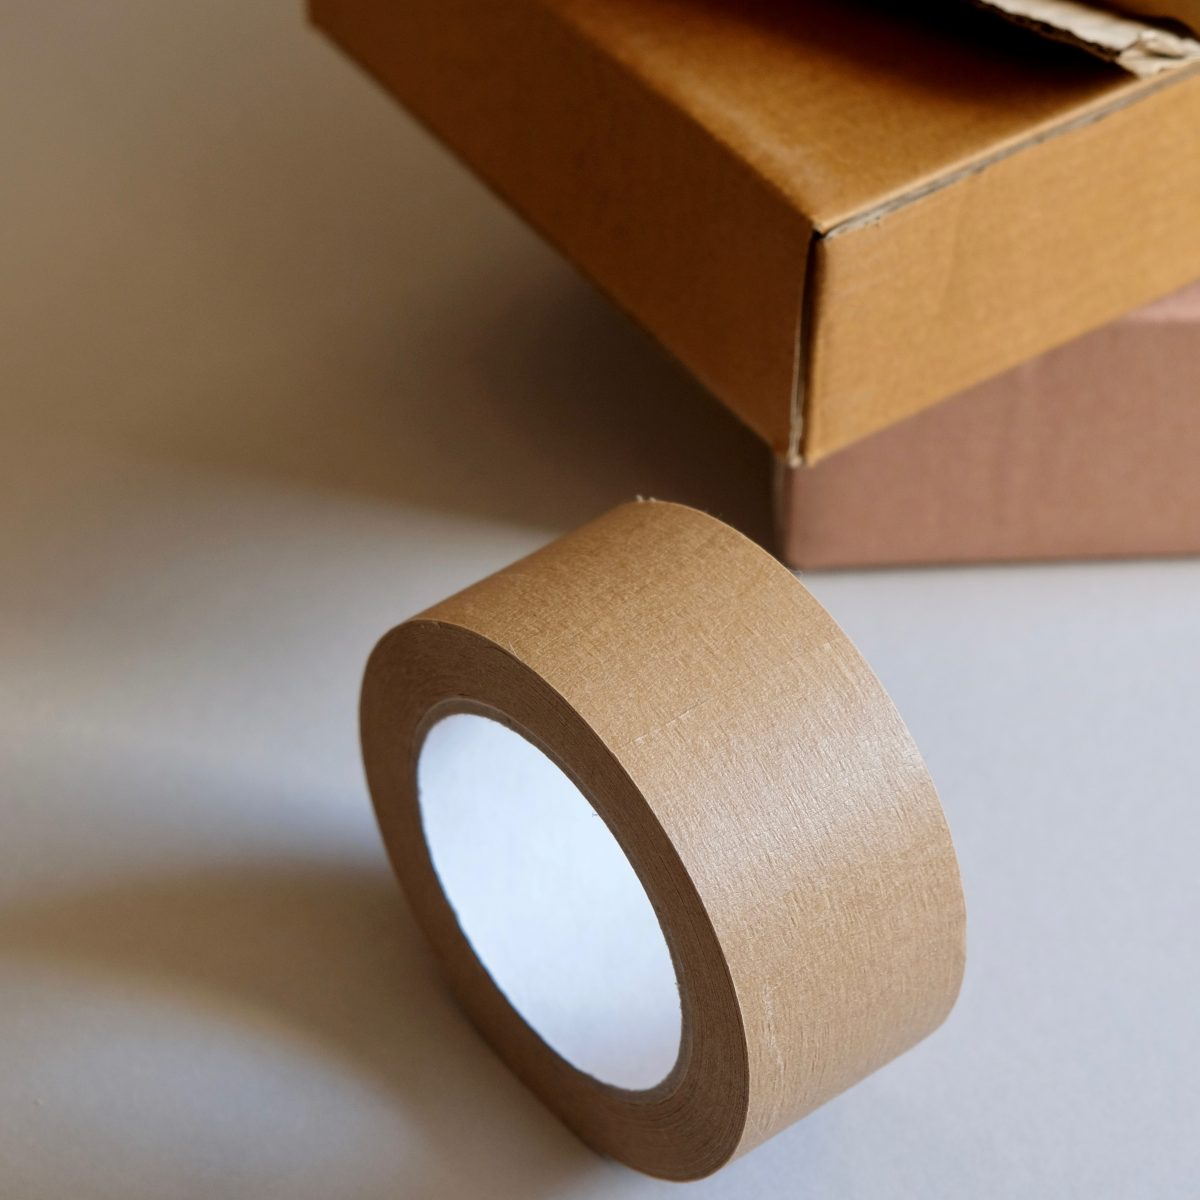 Roll of brown stationery tape